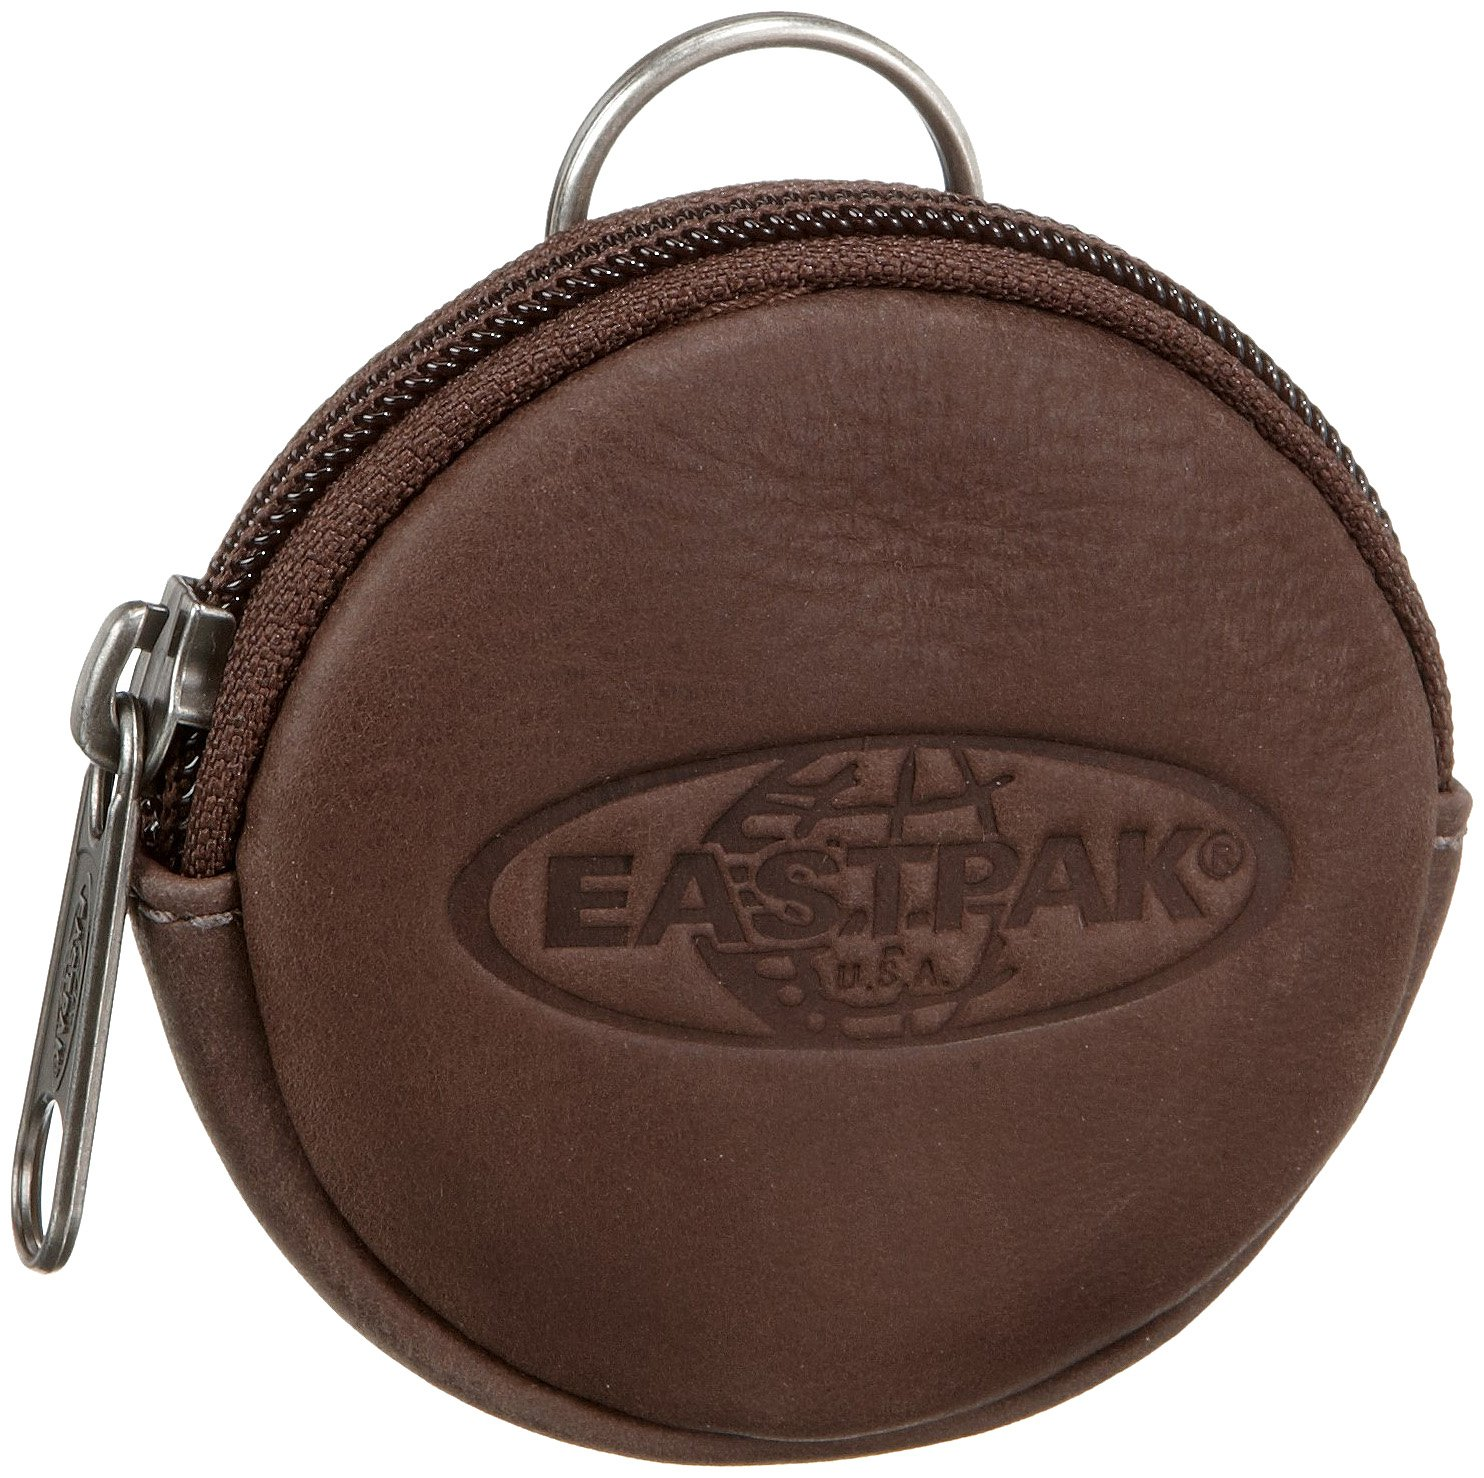 PORTE MONNAIE EASTPAK GROUPIE CuirEarth Leather Amazonfr Bagages - Porte monnaie eastpak